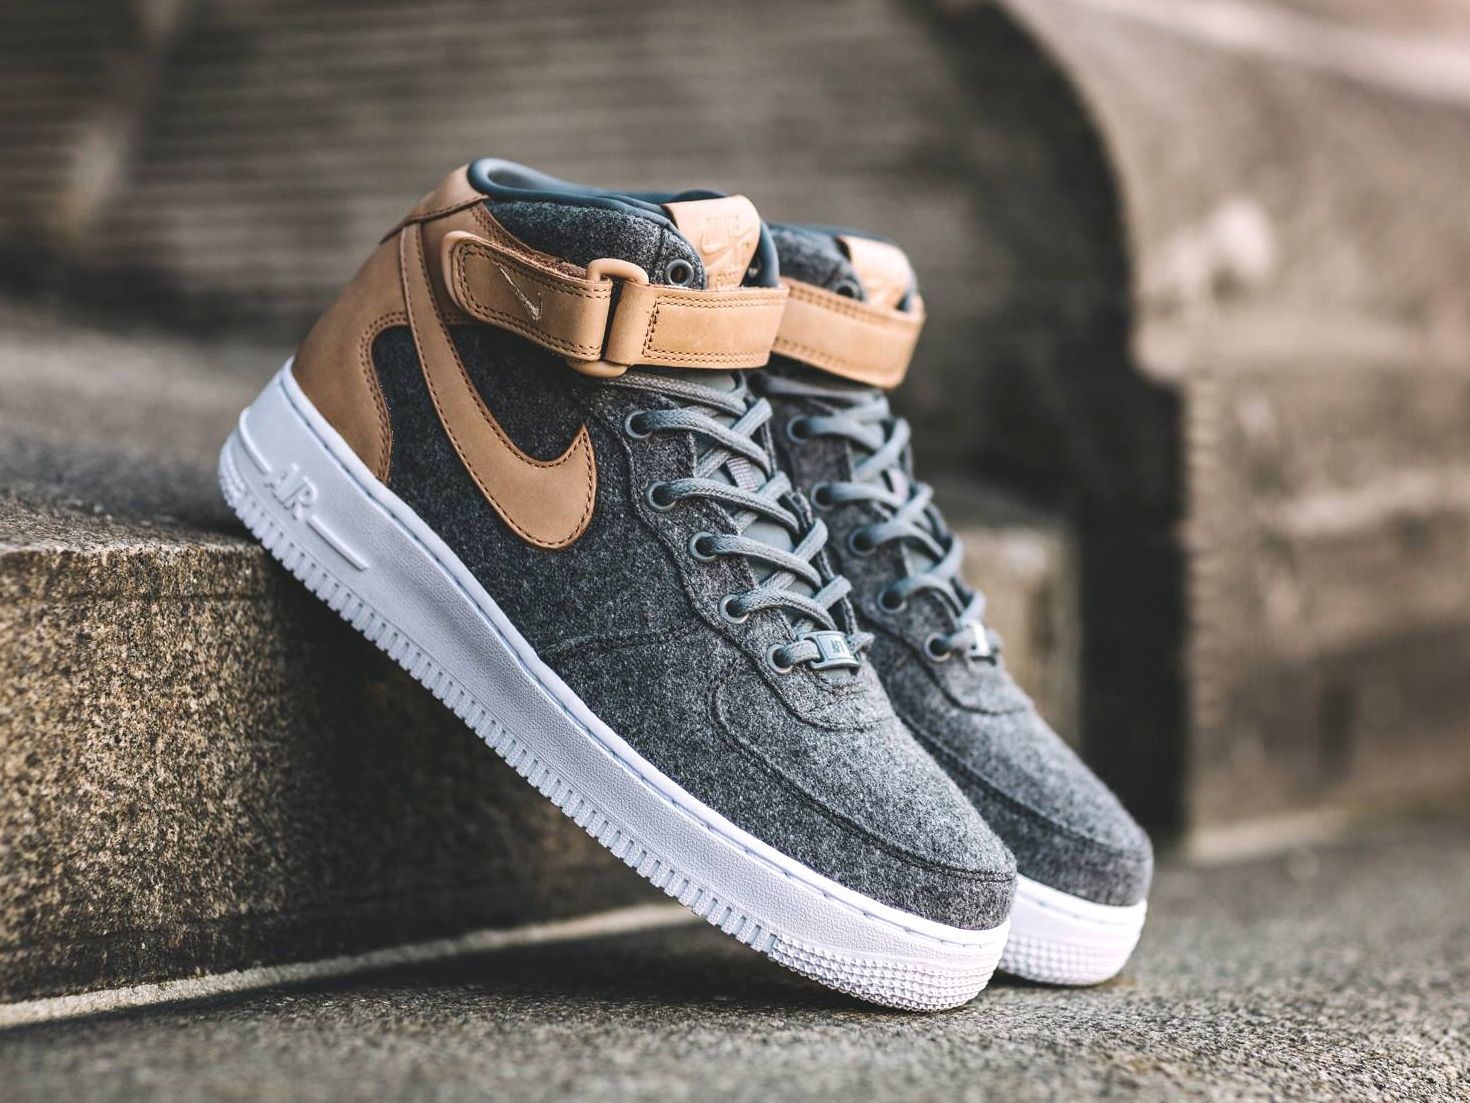 Nike Air Force 1 Pinterest wool Femme 2016 fashion Pinterest 1 Chaussure 1f4830